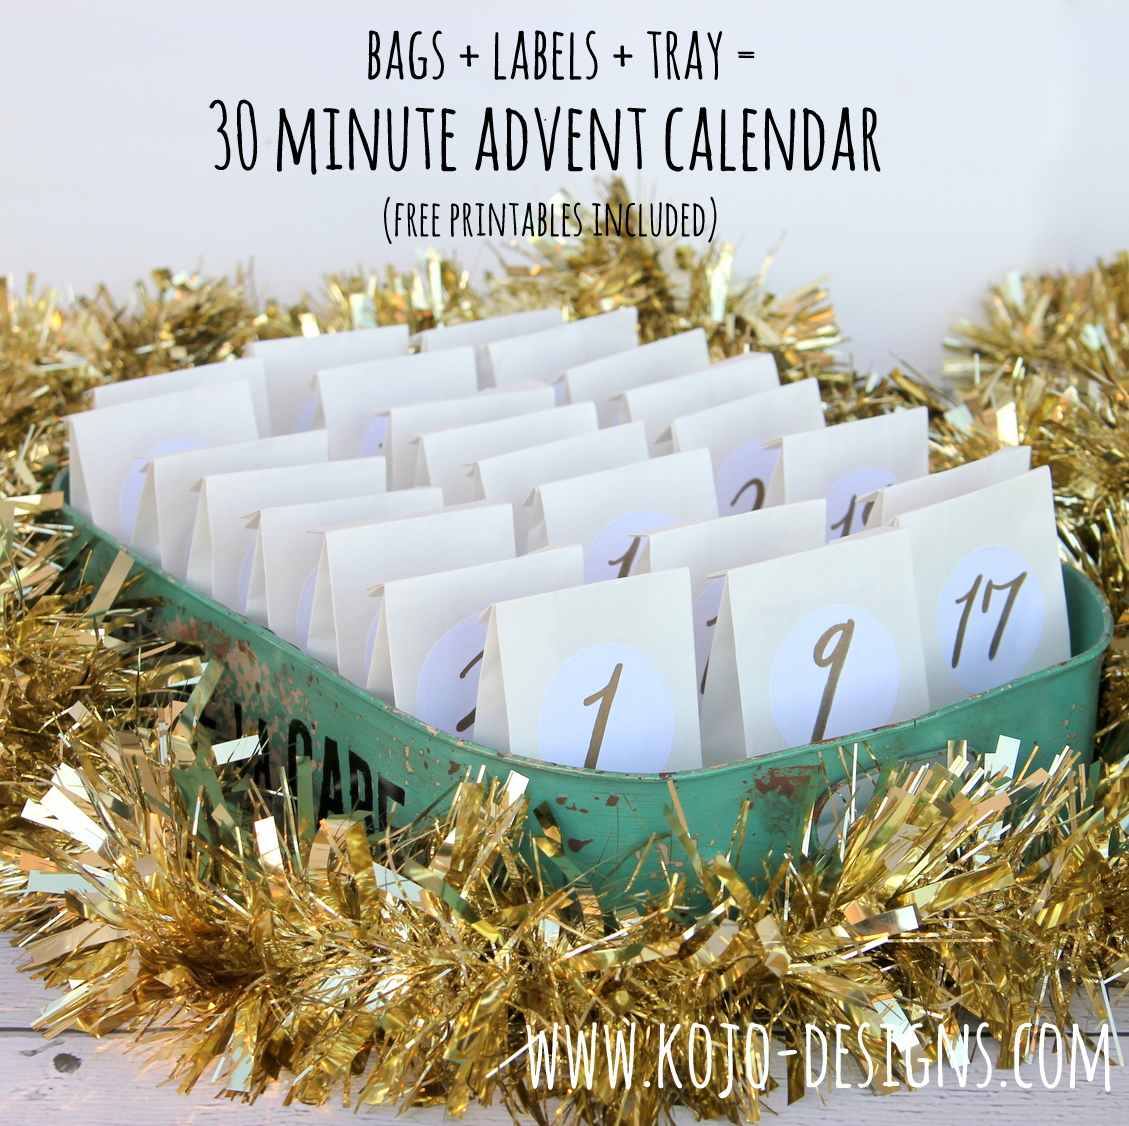 how to put together an advent calendar in 30 minutes (you just need small paper bags, these free printable labels, a tray and treats to fill the bags)